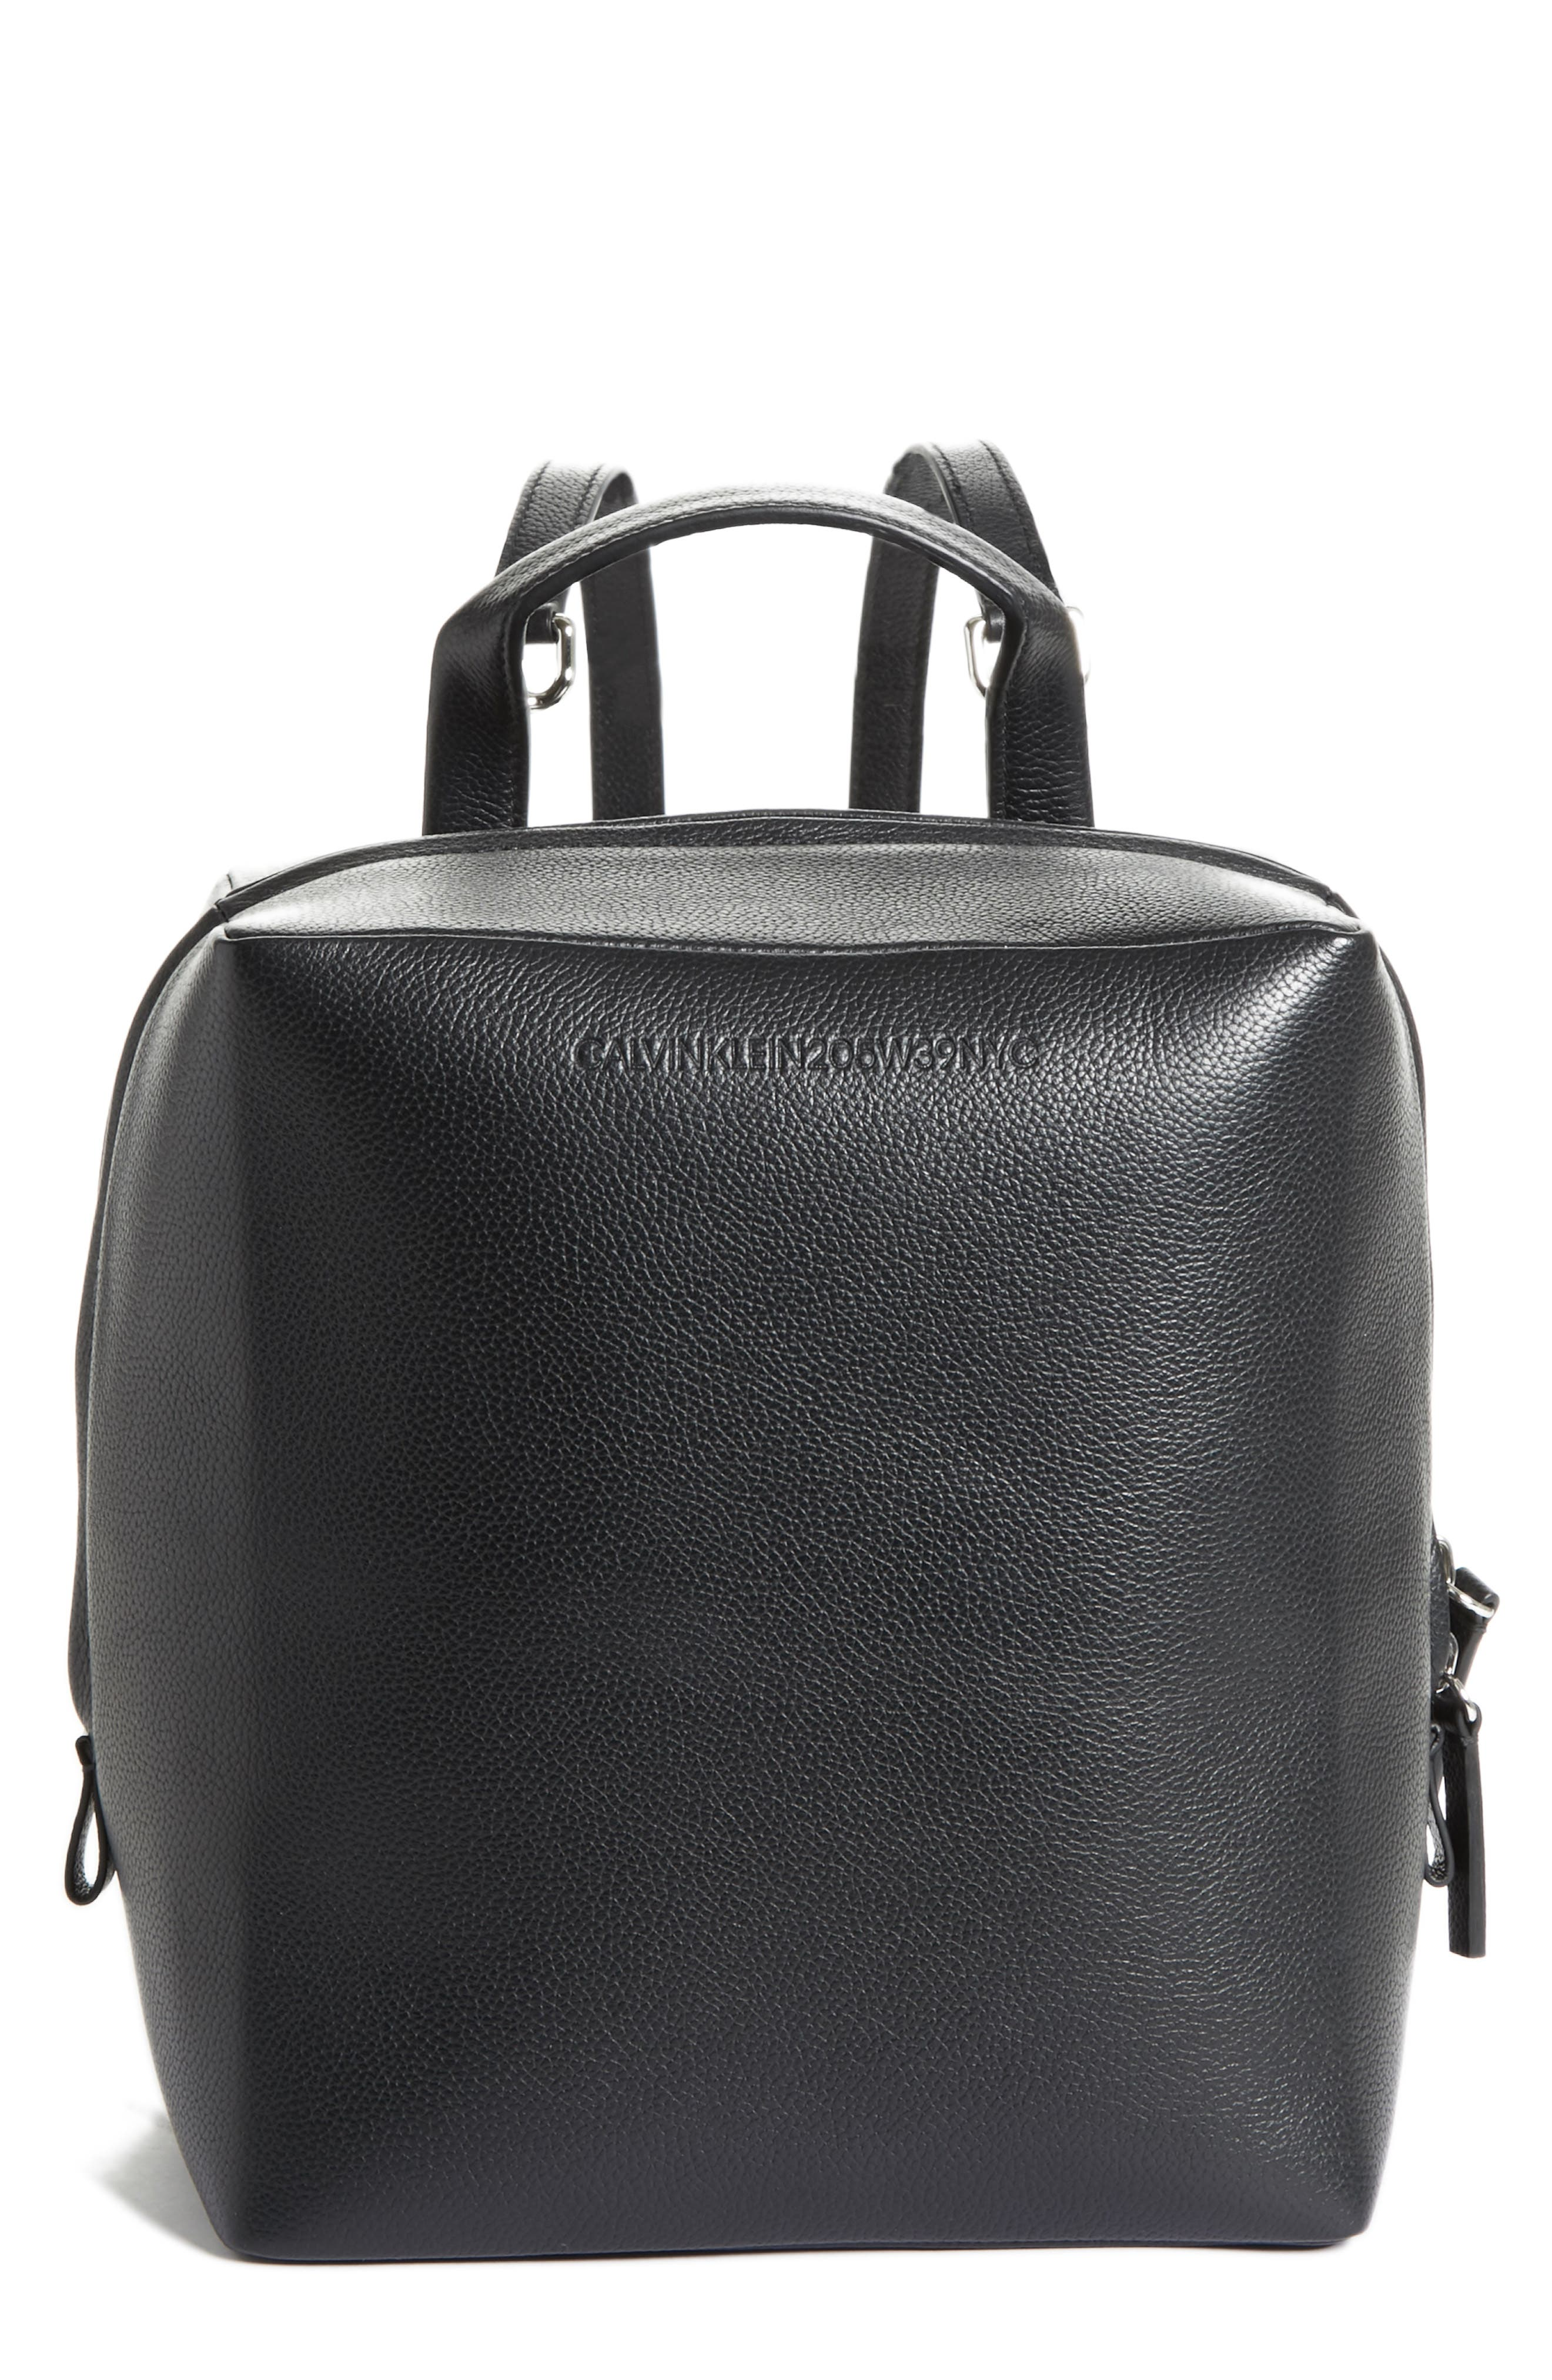 Cube Leather Backpack,                             Main thumbnail 1, color,                             001